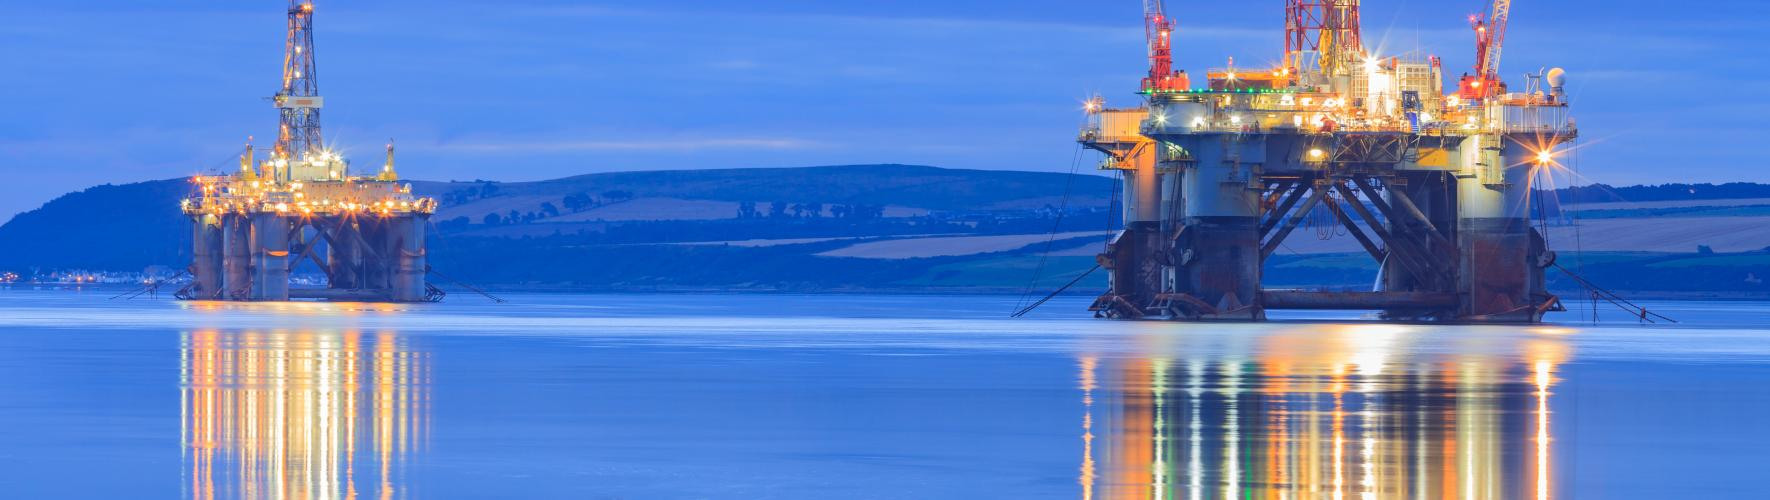 Serving the North Sea Oil and Gas Industry